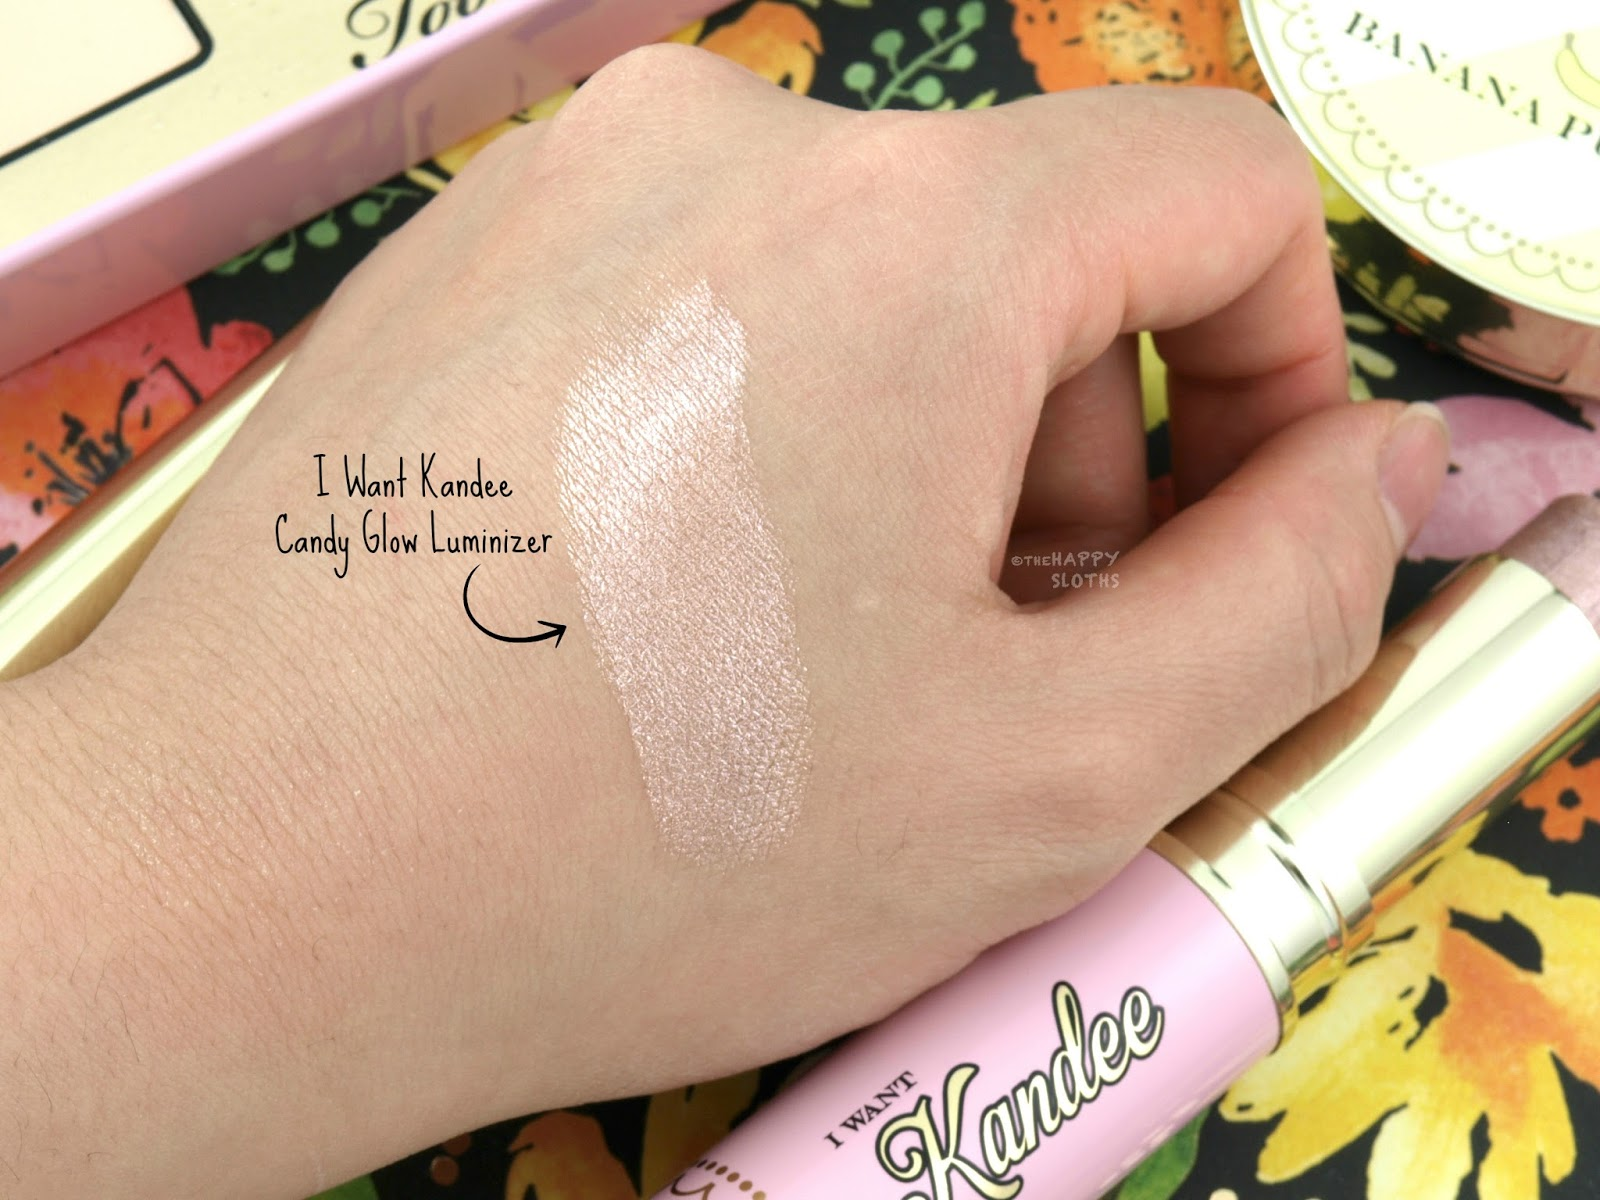 Too Faced x Kandee Johnson | I Want Kandee Candy Glow Luminizer: Review and Swatches